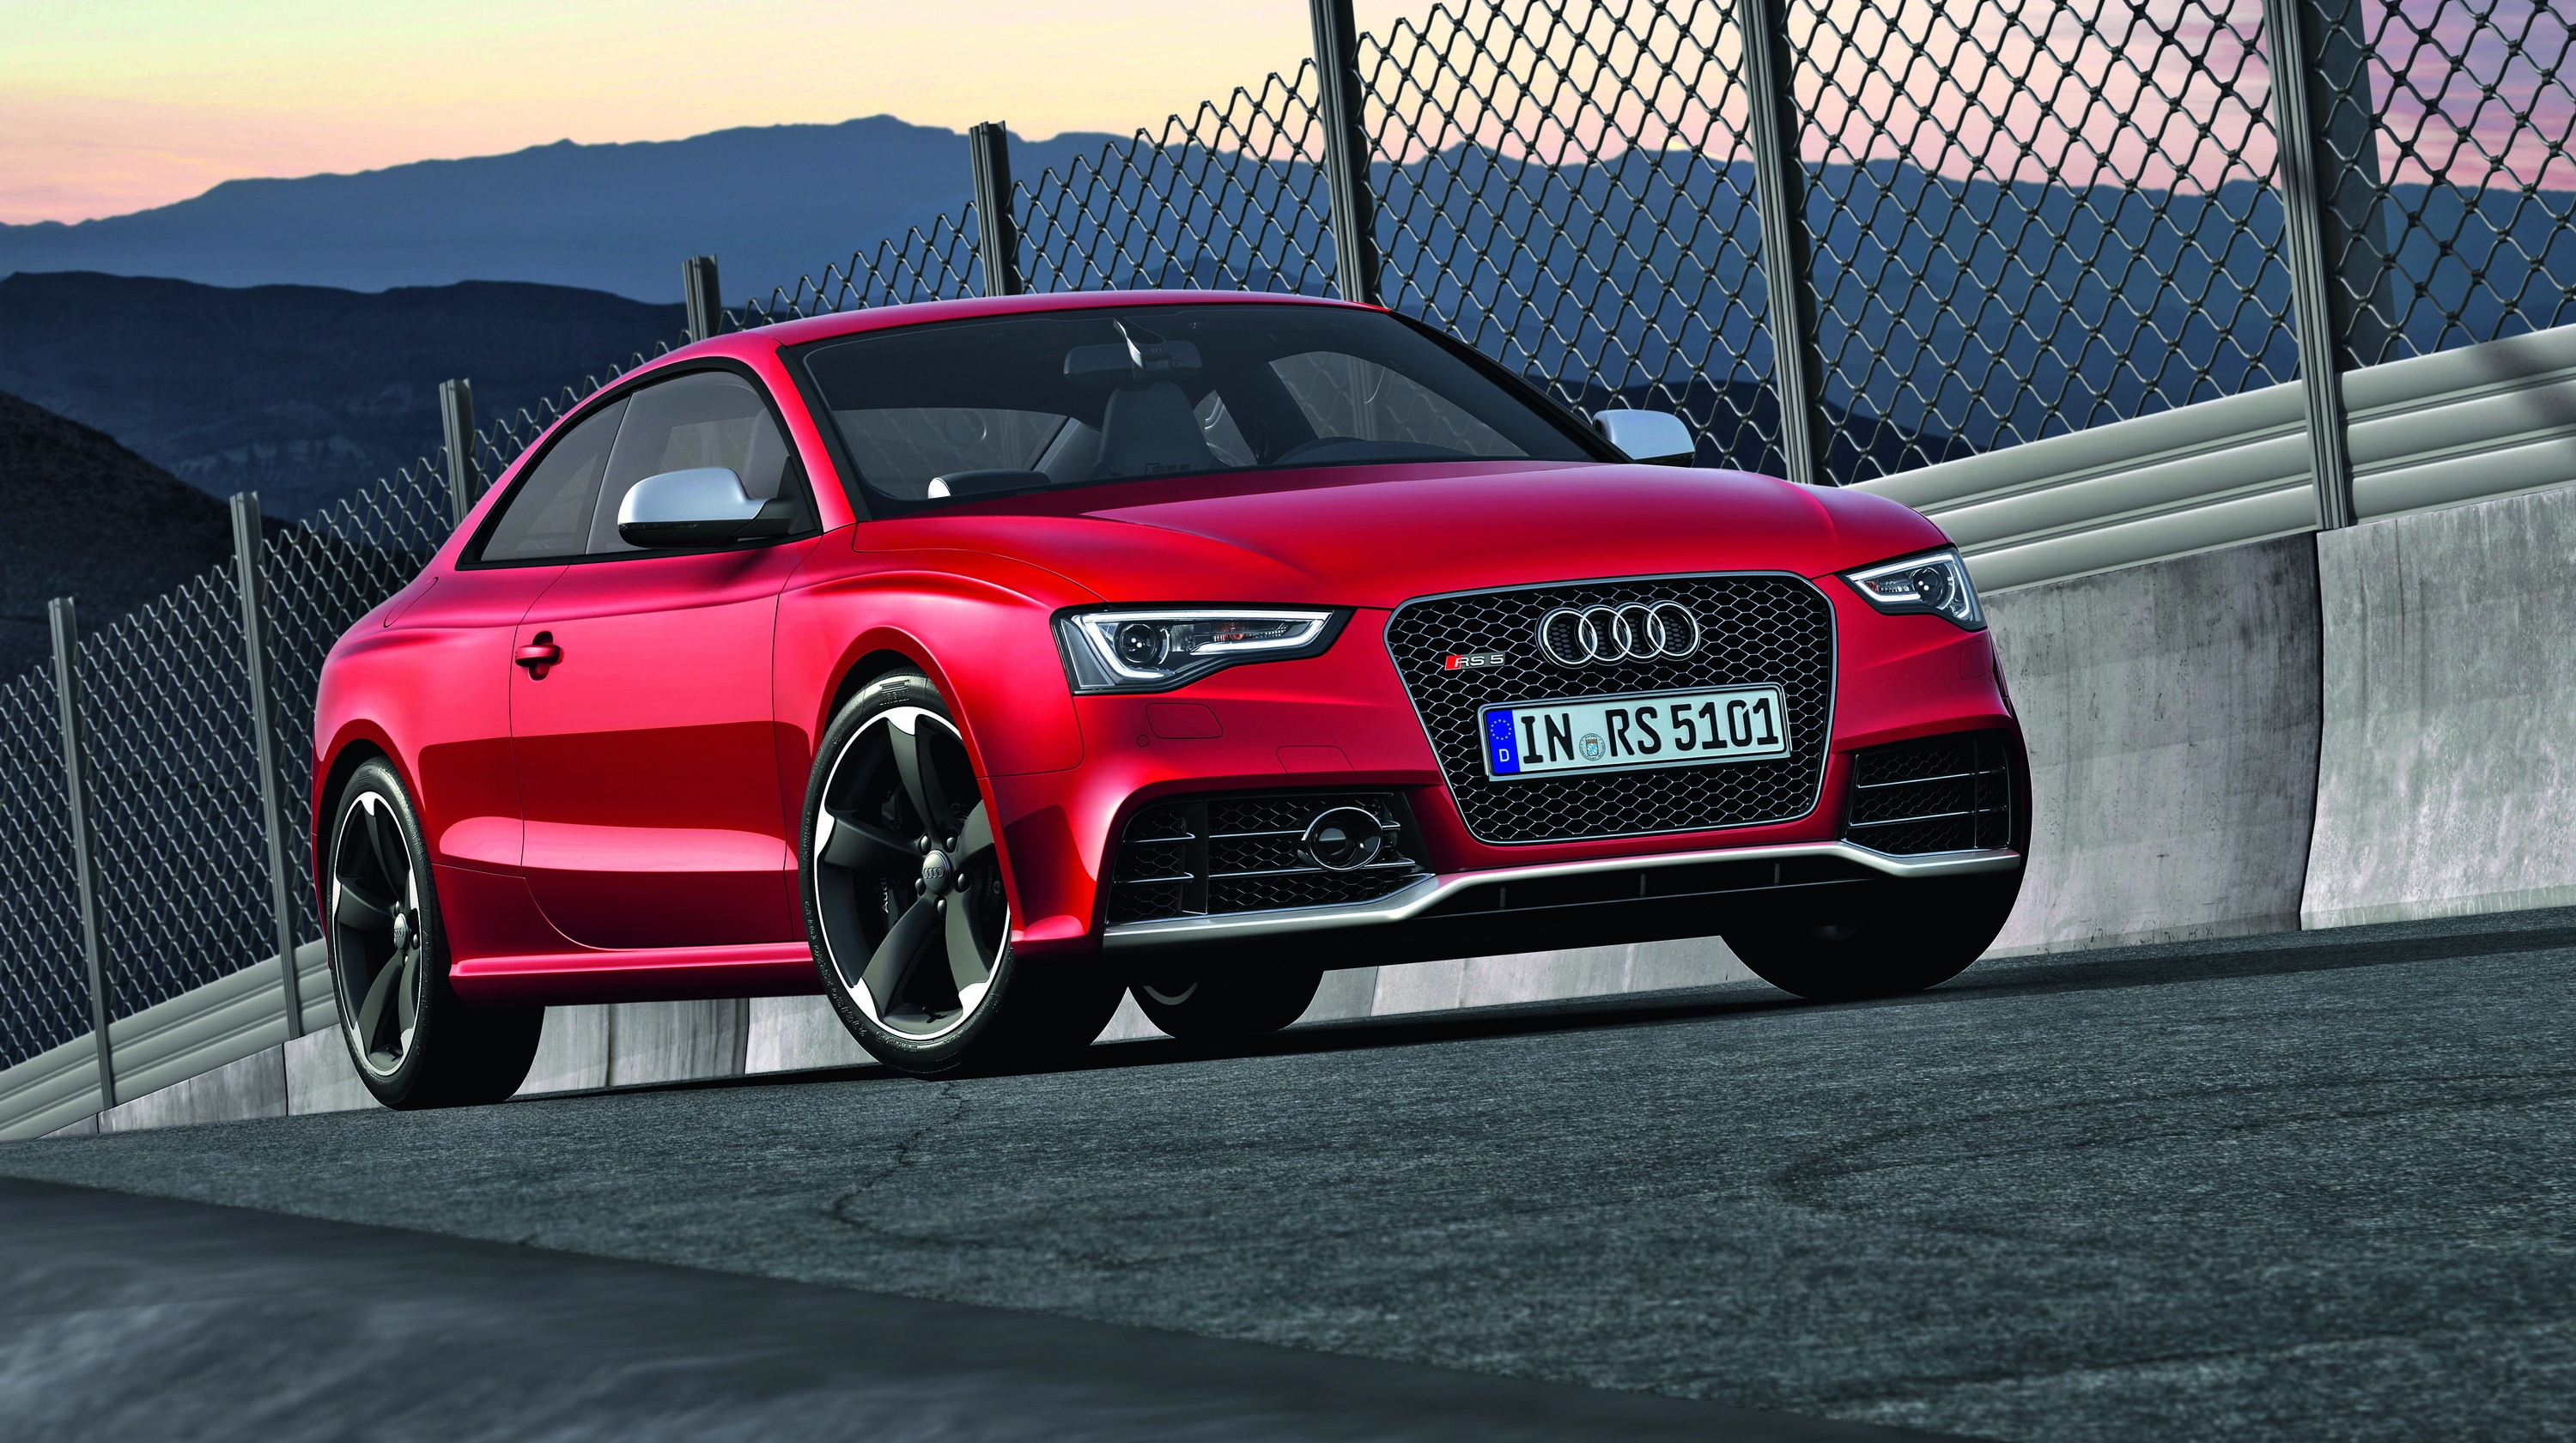 Superb 2014 Audi RS5 | Top Speed. »